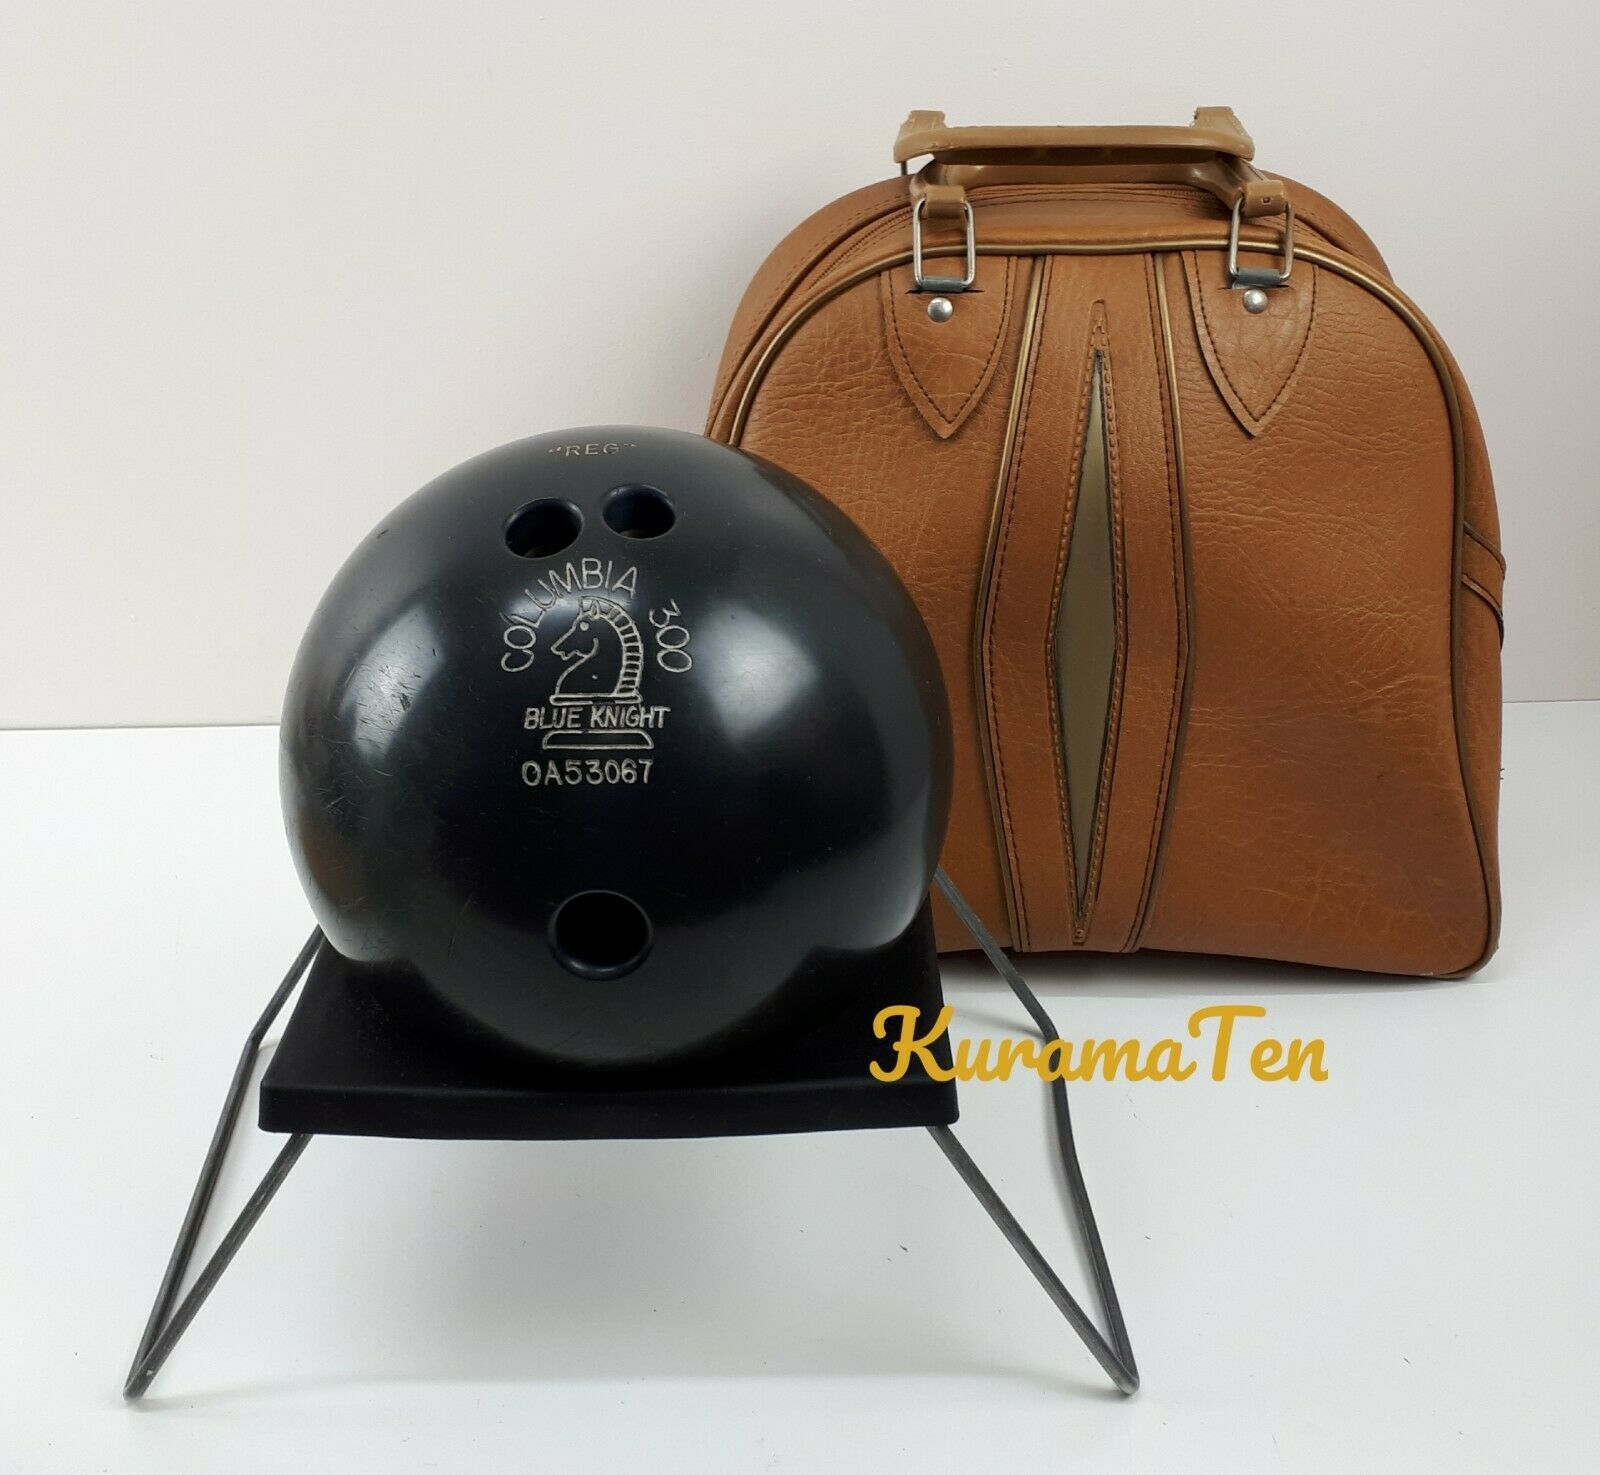 Primary image for Vintage Columbia 300 Blue Knight Drilled Bowling Ball URETHANE With Bag 15LB